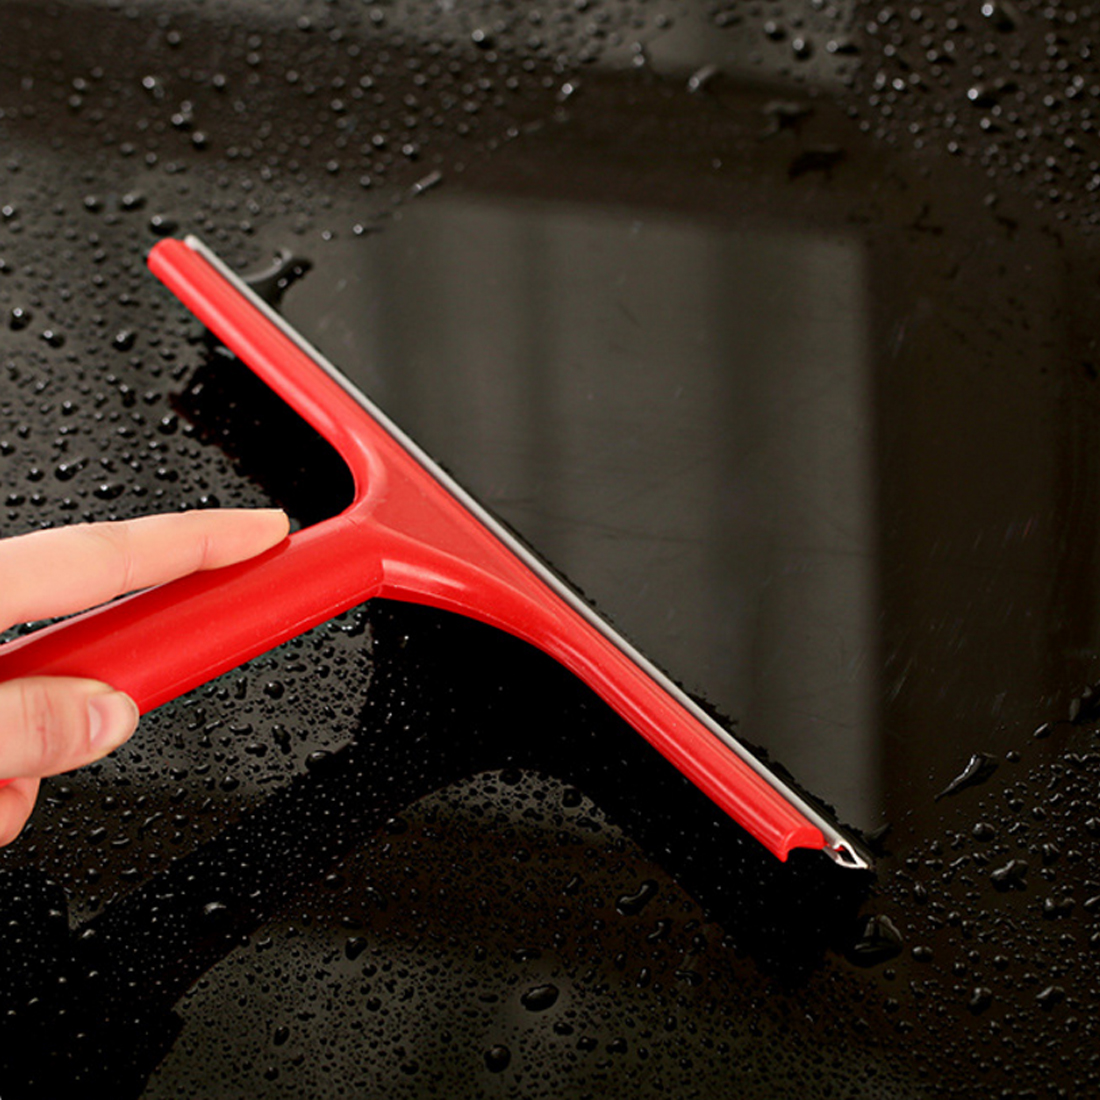 BU-Bauty New Arrival Car Silicone Water Wiper Soap Cleaner Scraper Blade Squeegee Car Windshield Window Cleaning Tool